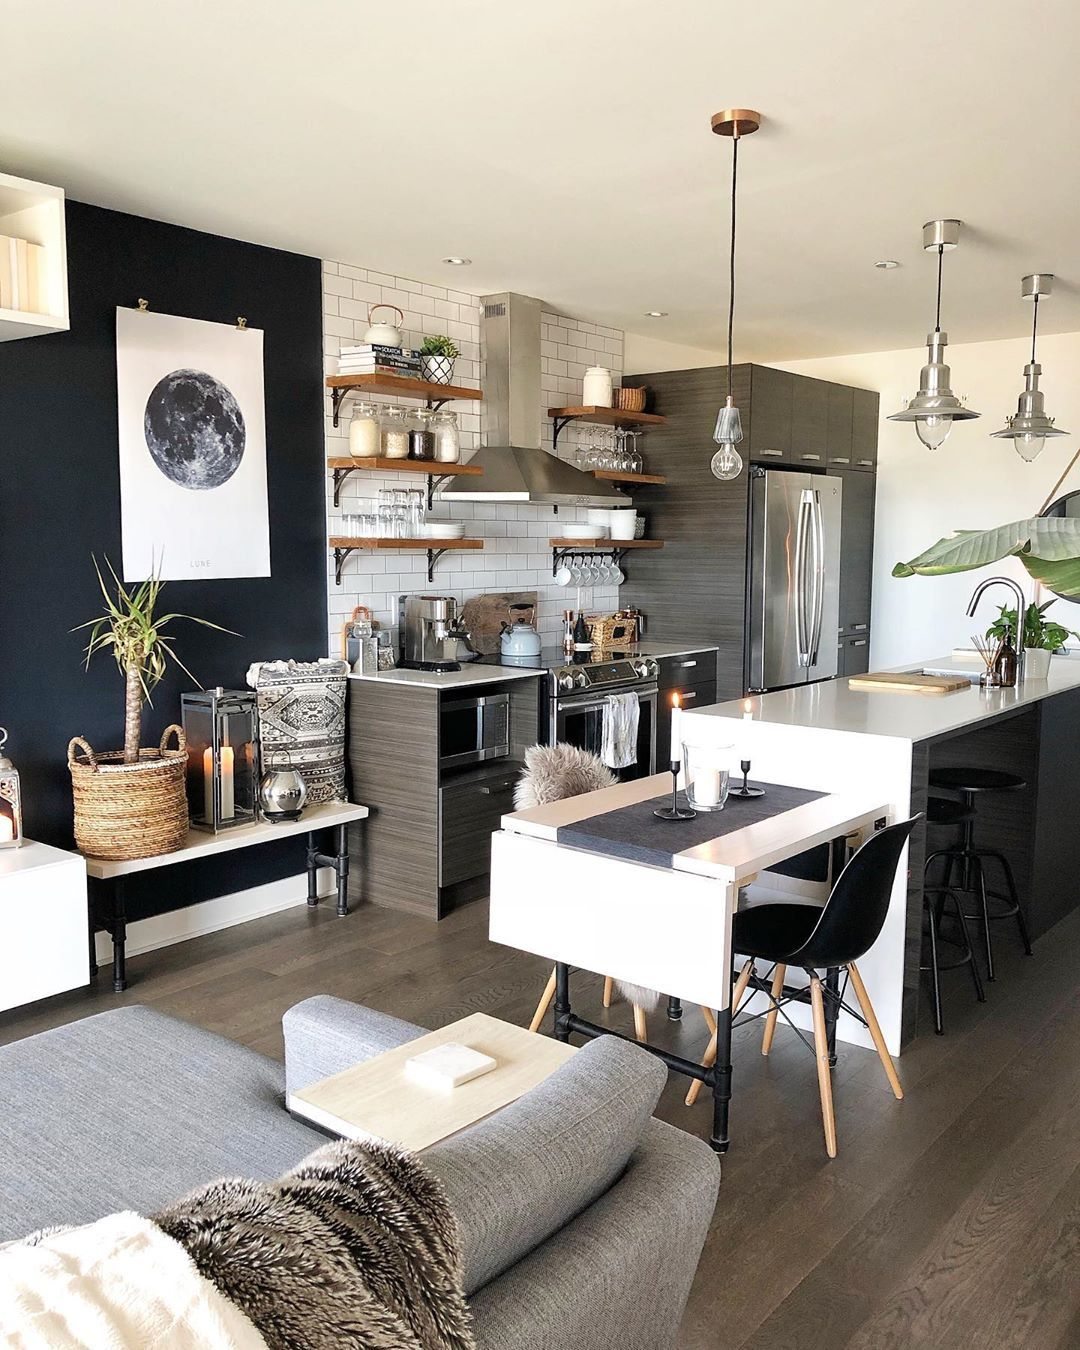 Modern Rustic Kitchen Designs And Ideas Rustic Home Decor And